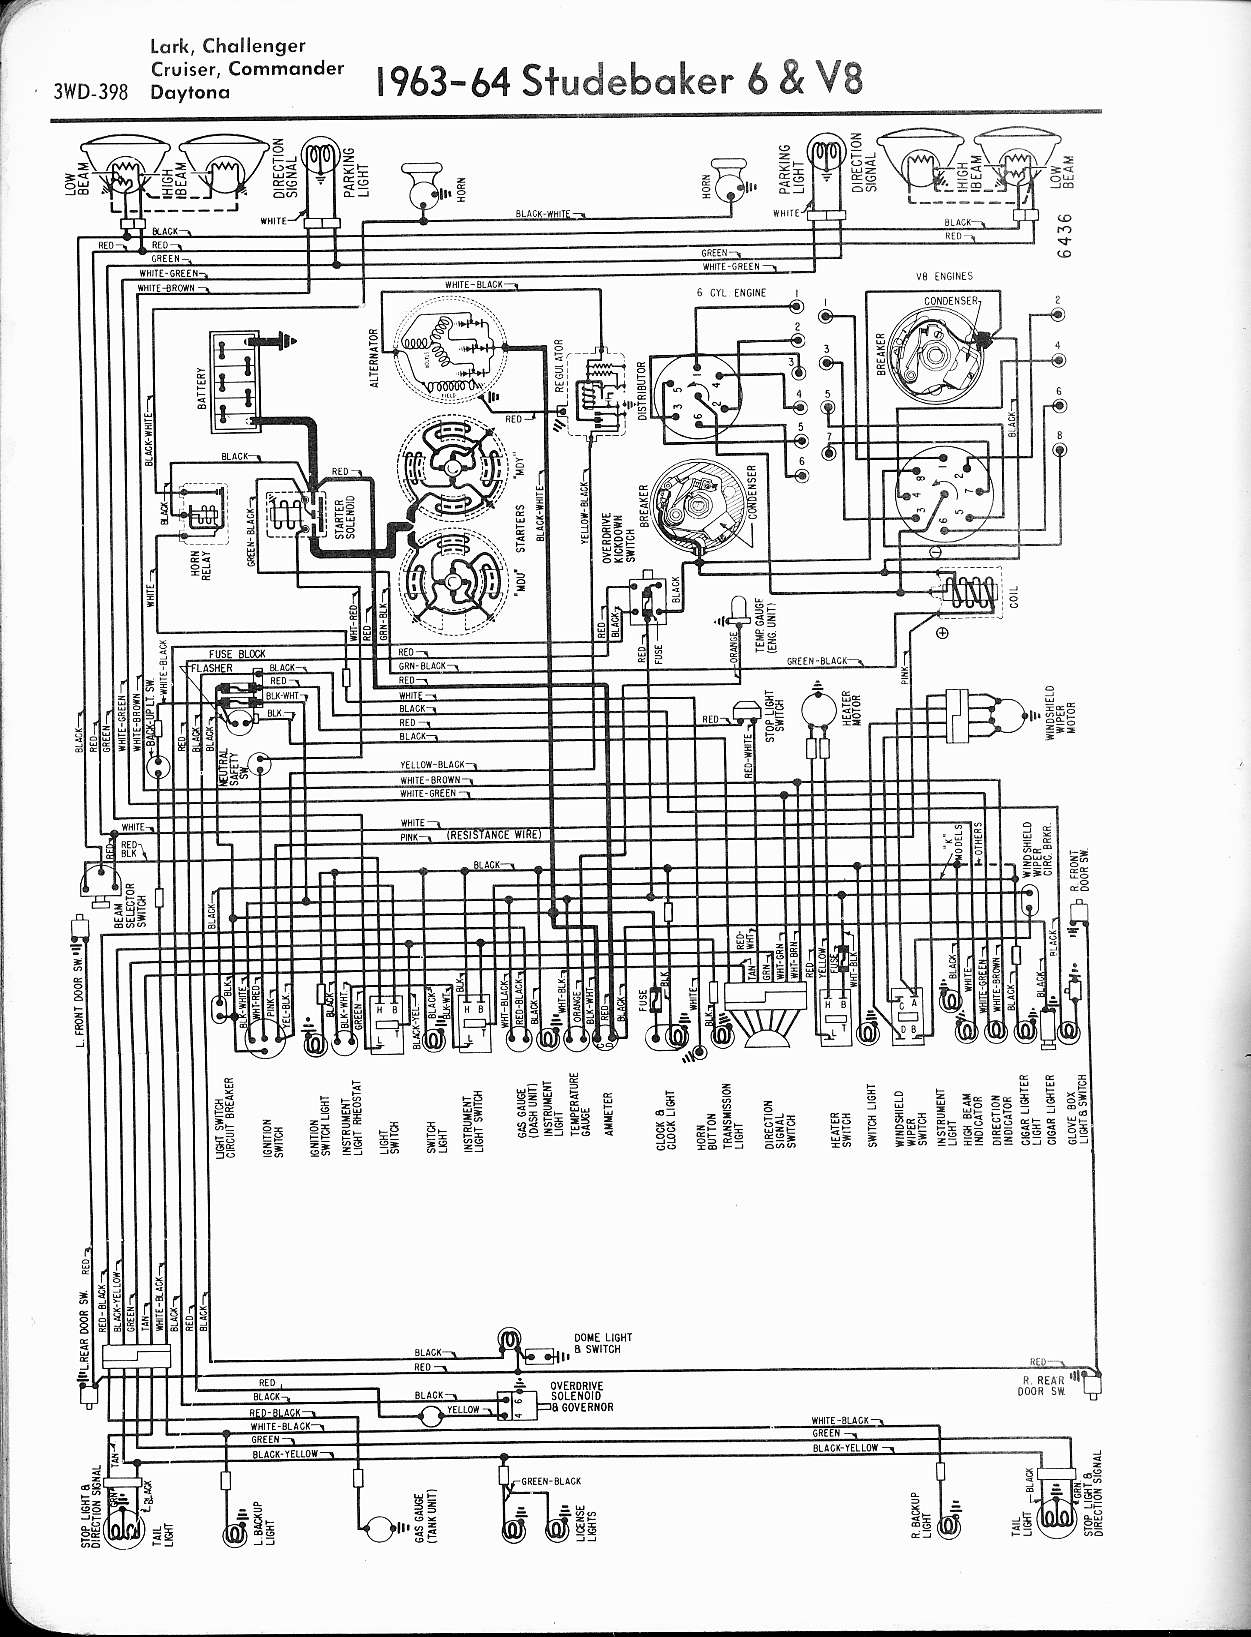 MWire5765 398 studebaker wiring diagrams the old car manual project old car manual project wiring diagrams at soozxer.org